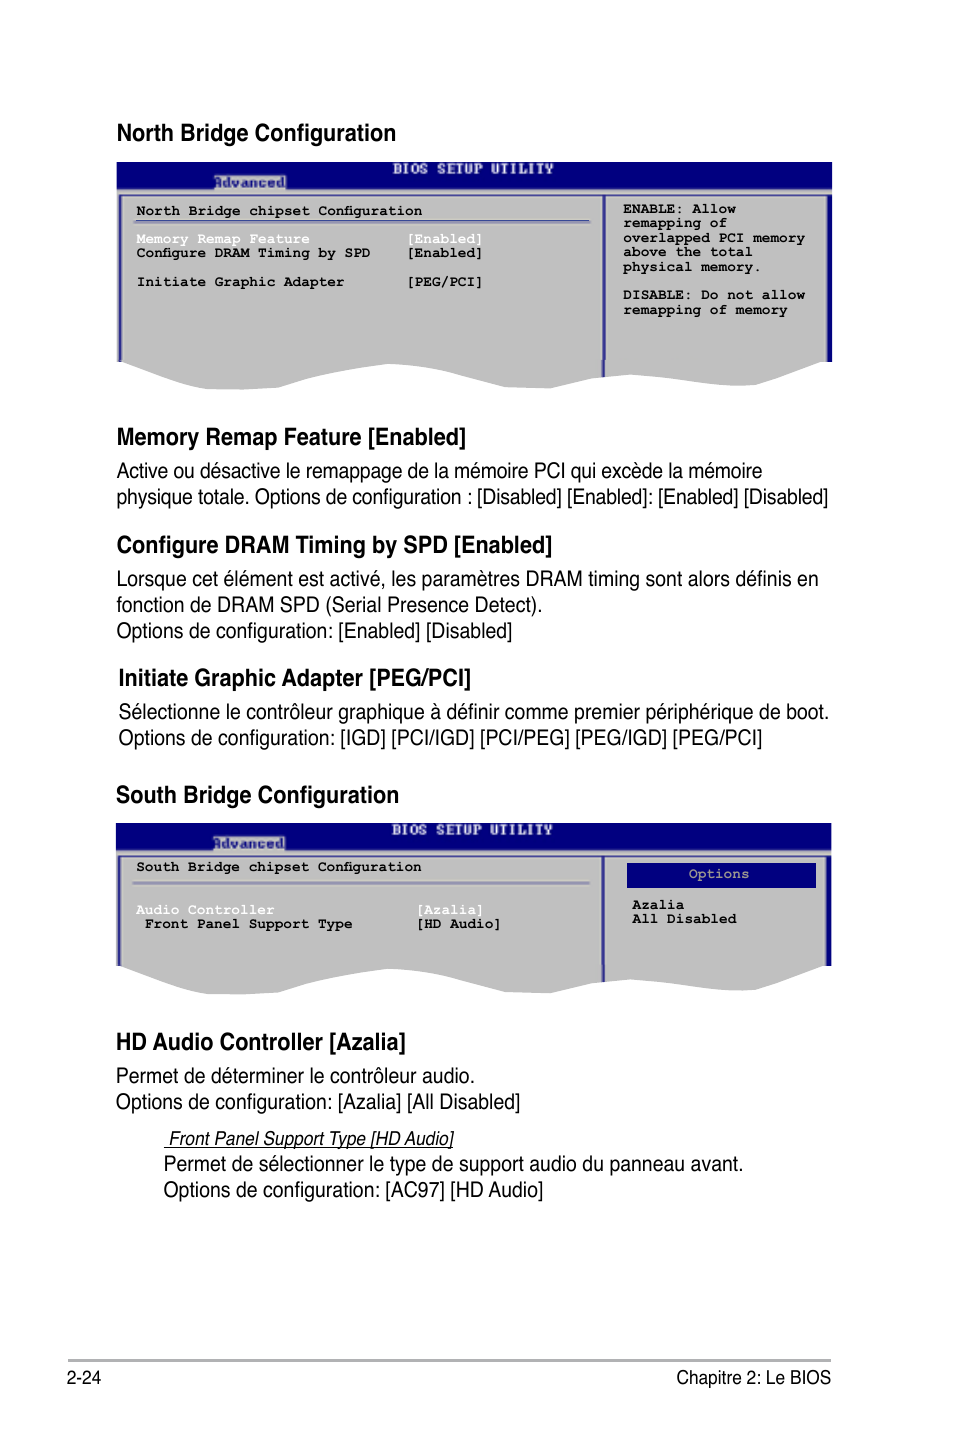 Configure dram timing by spd [enabled, Initiate graphic